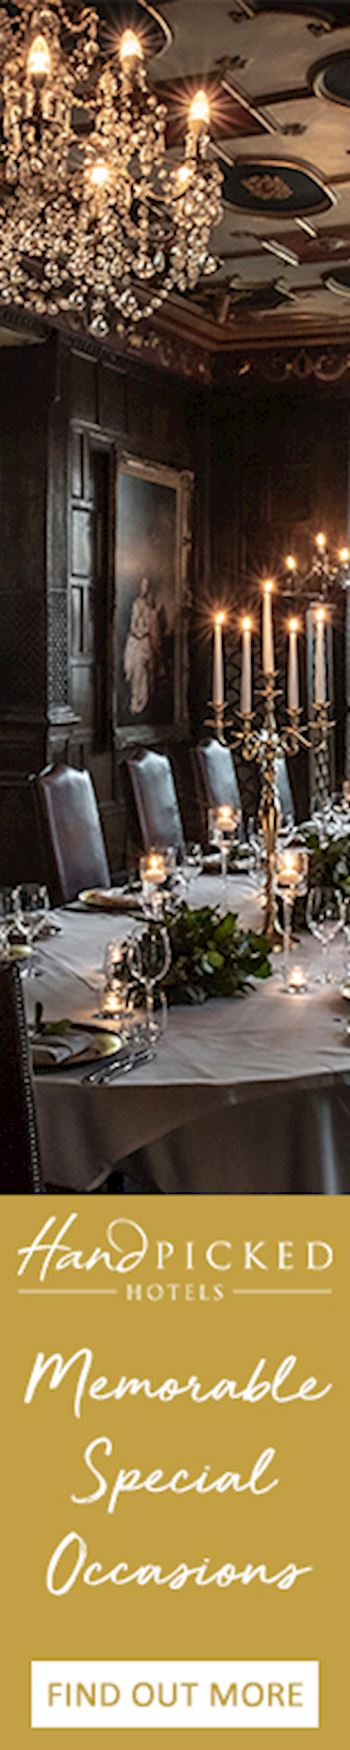 Handpicked Hotels Special Occasions SS